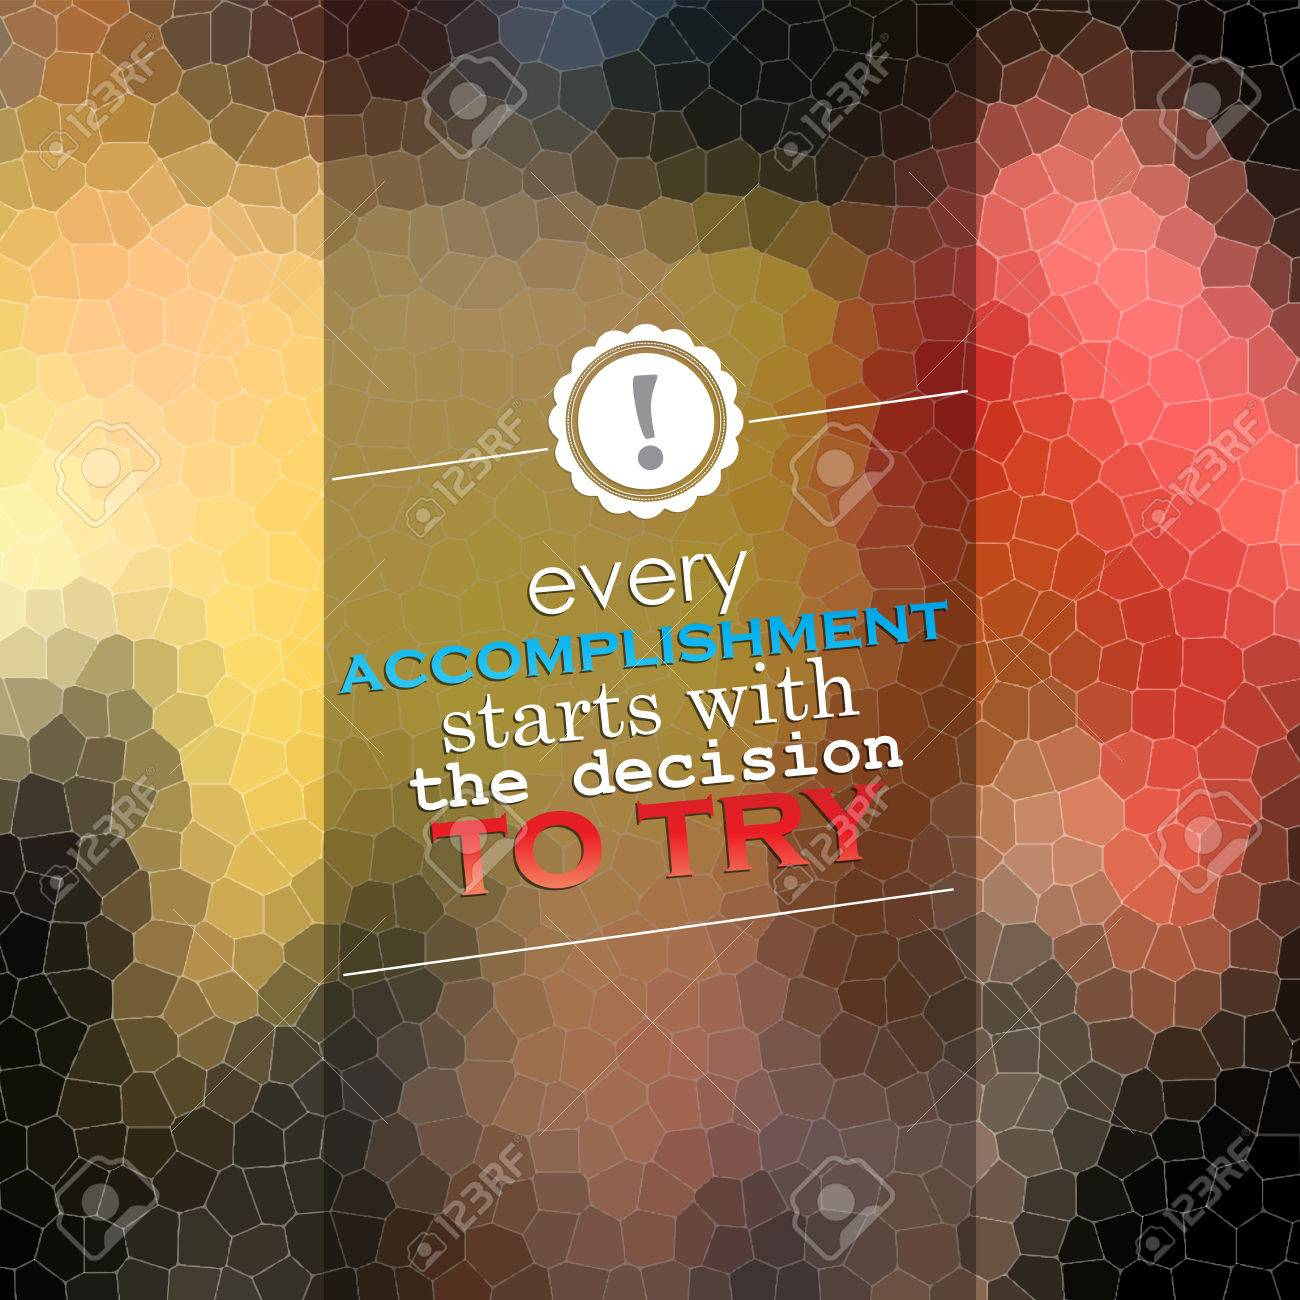 Every accomplishment starts with the decision to try. Motivational poster. Mosaic background. Stock Vector - 30129006